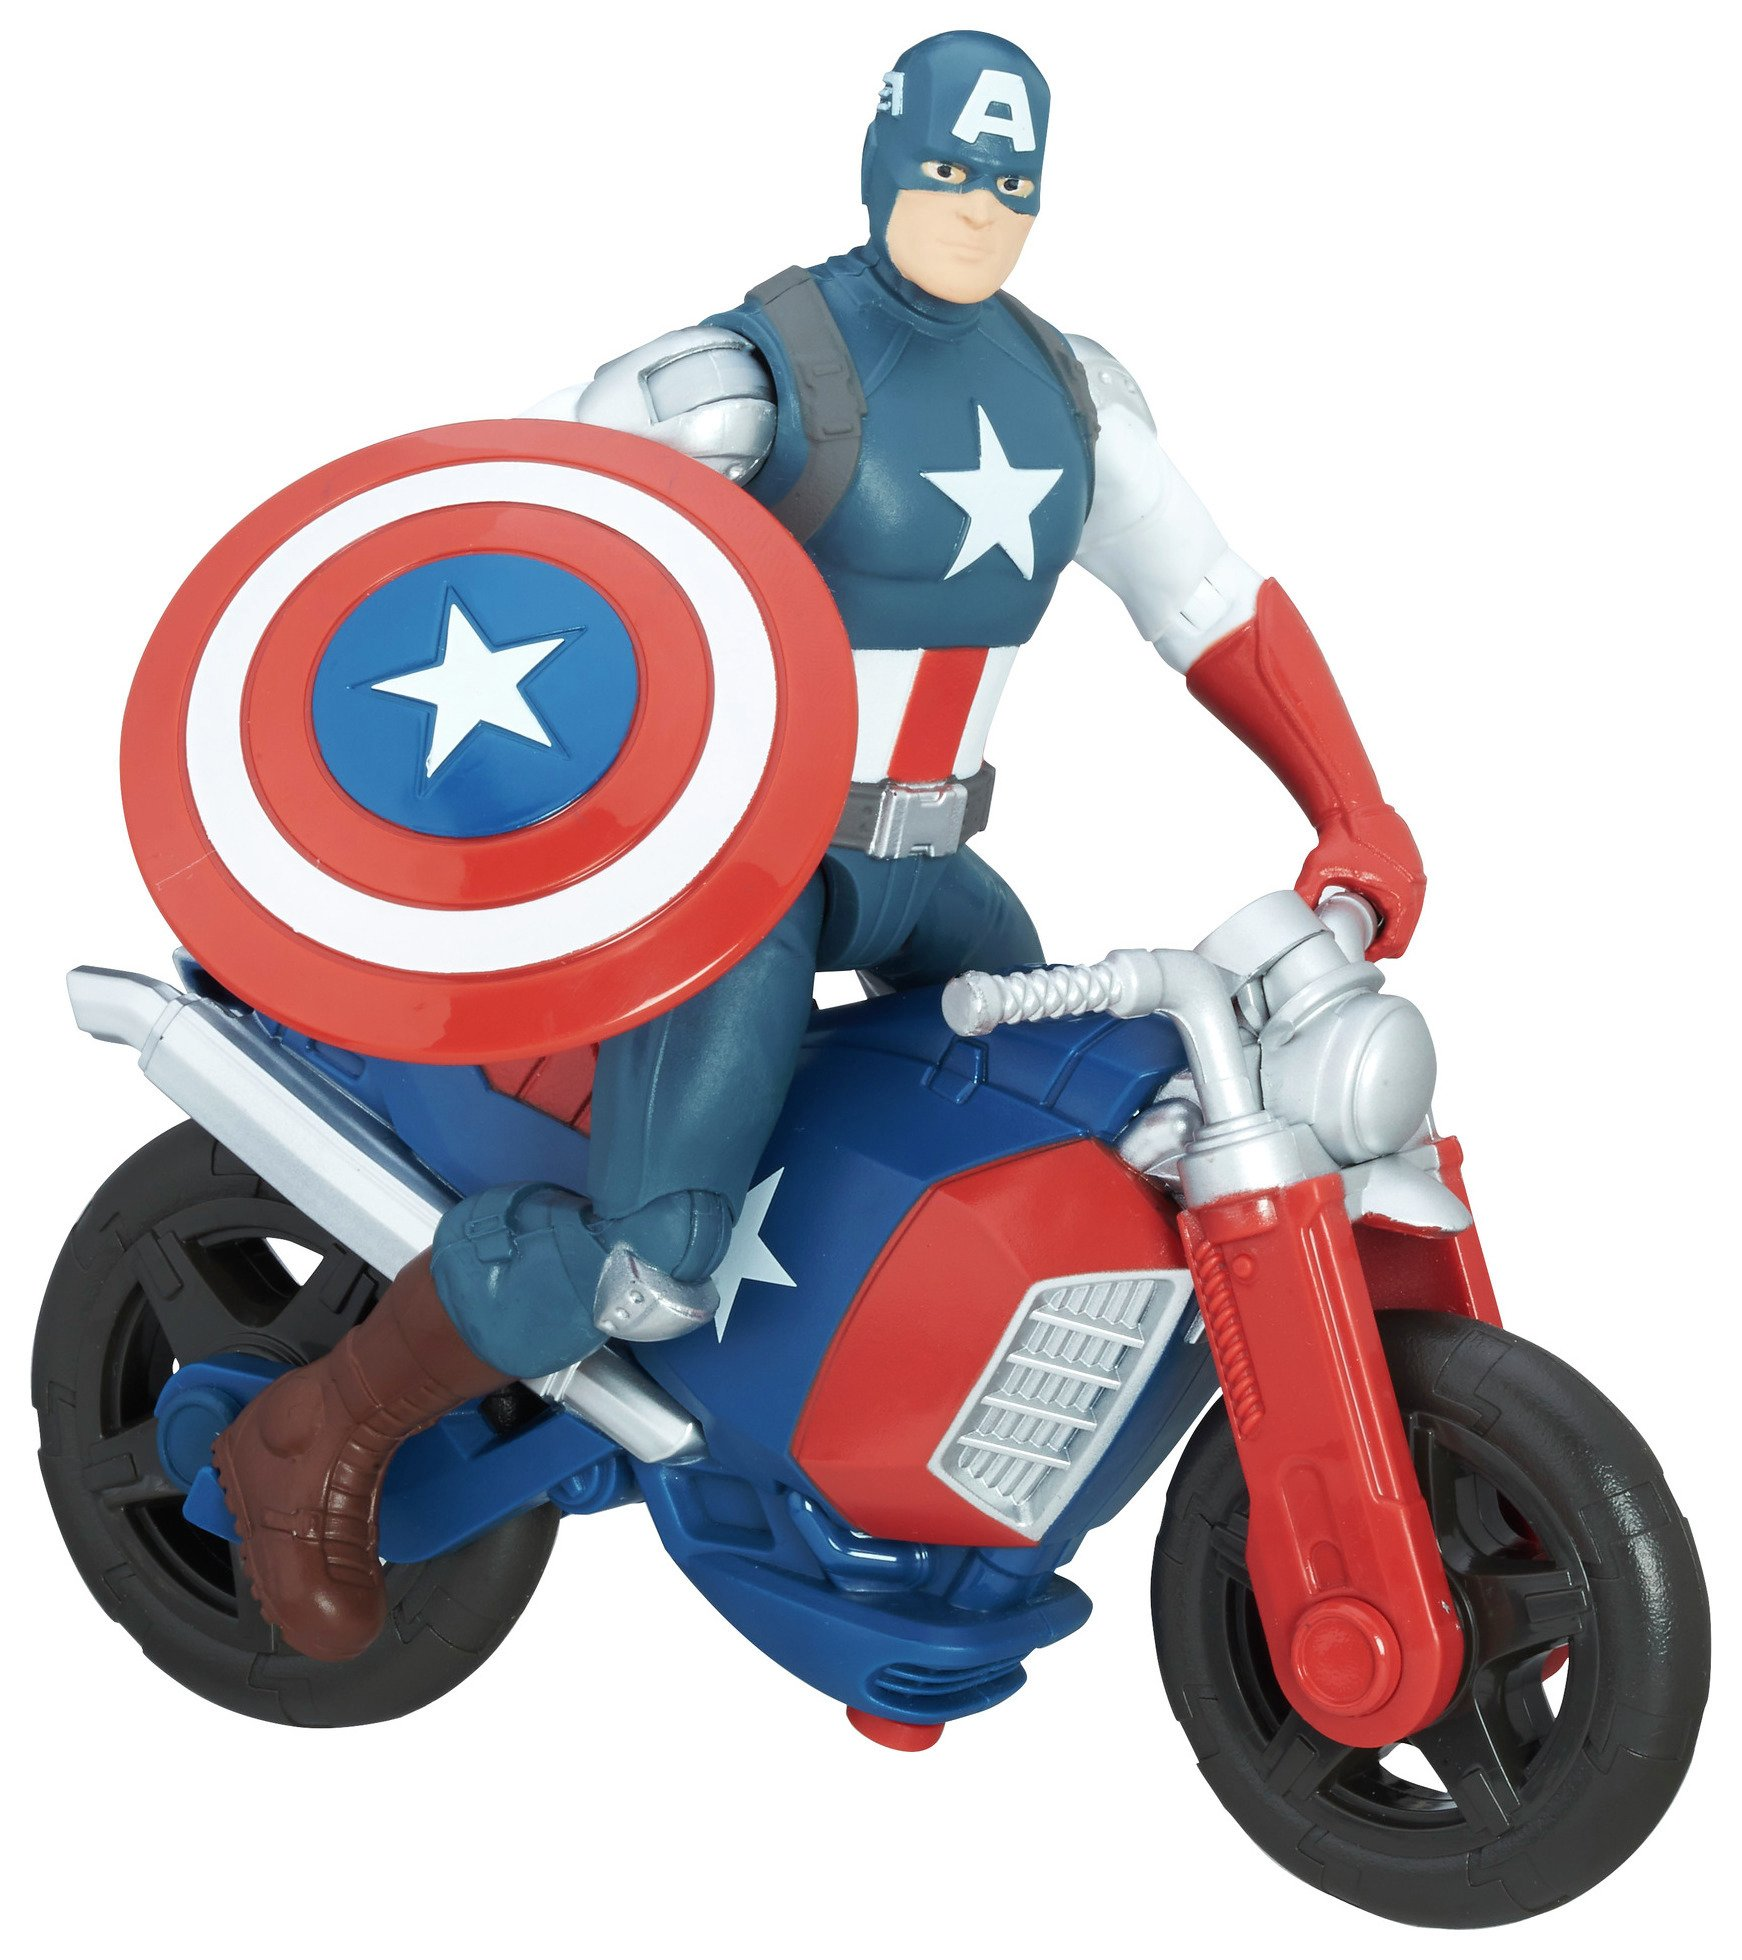 Marvel Avengers 6-Inch Captain America Figure and Vehicle.